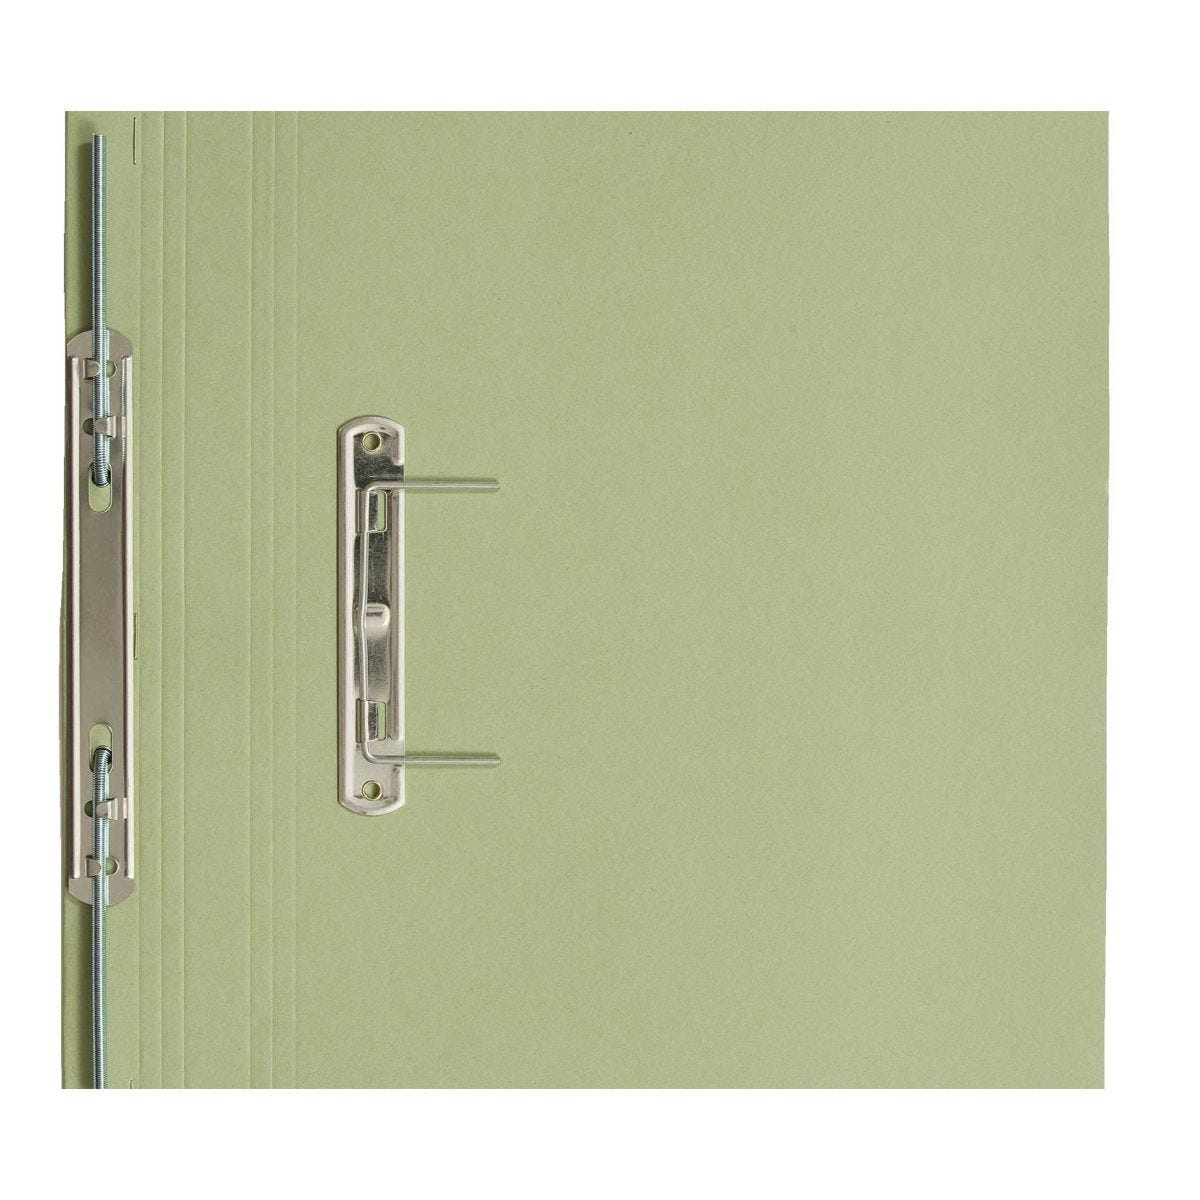 Transfer Spiral File Foolscap Pack of 50 Green